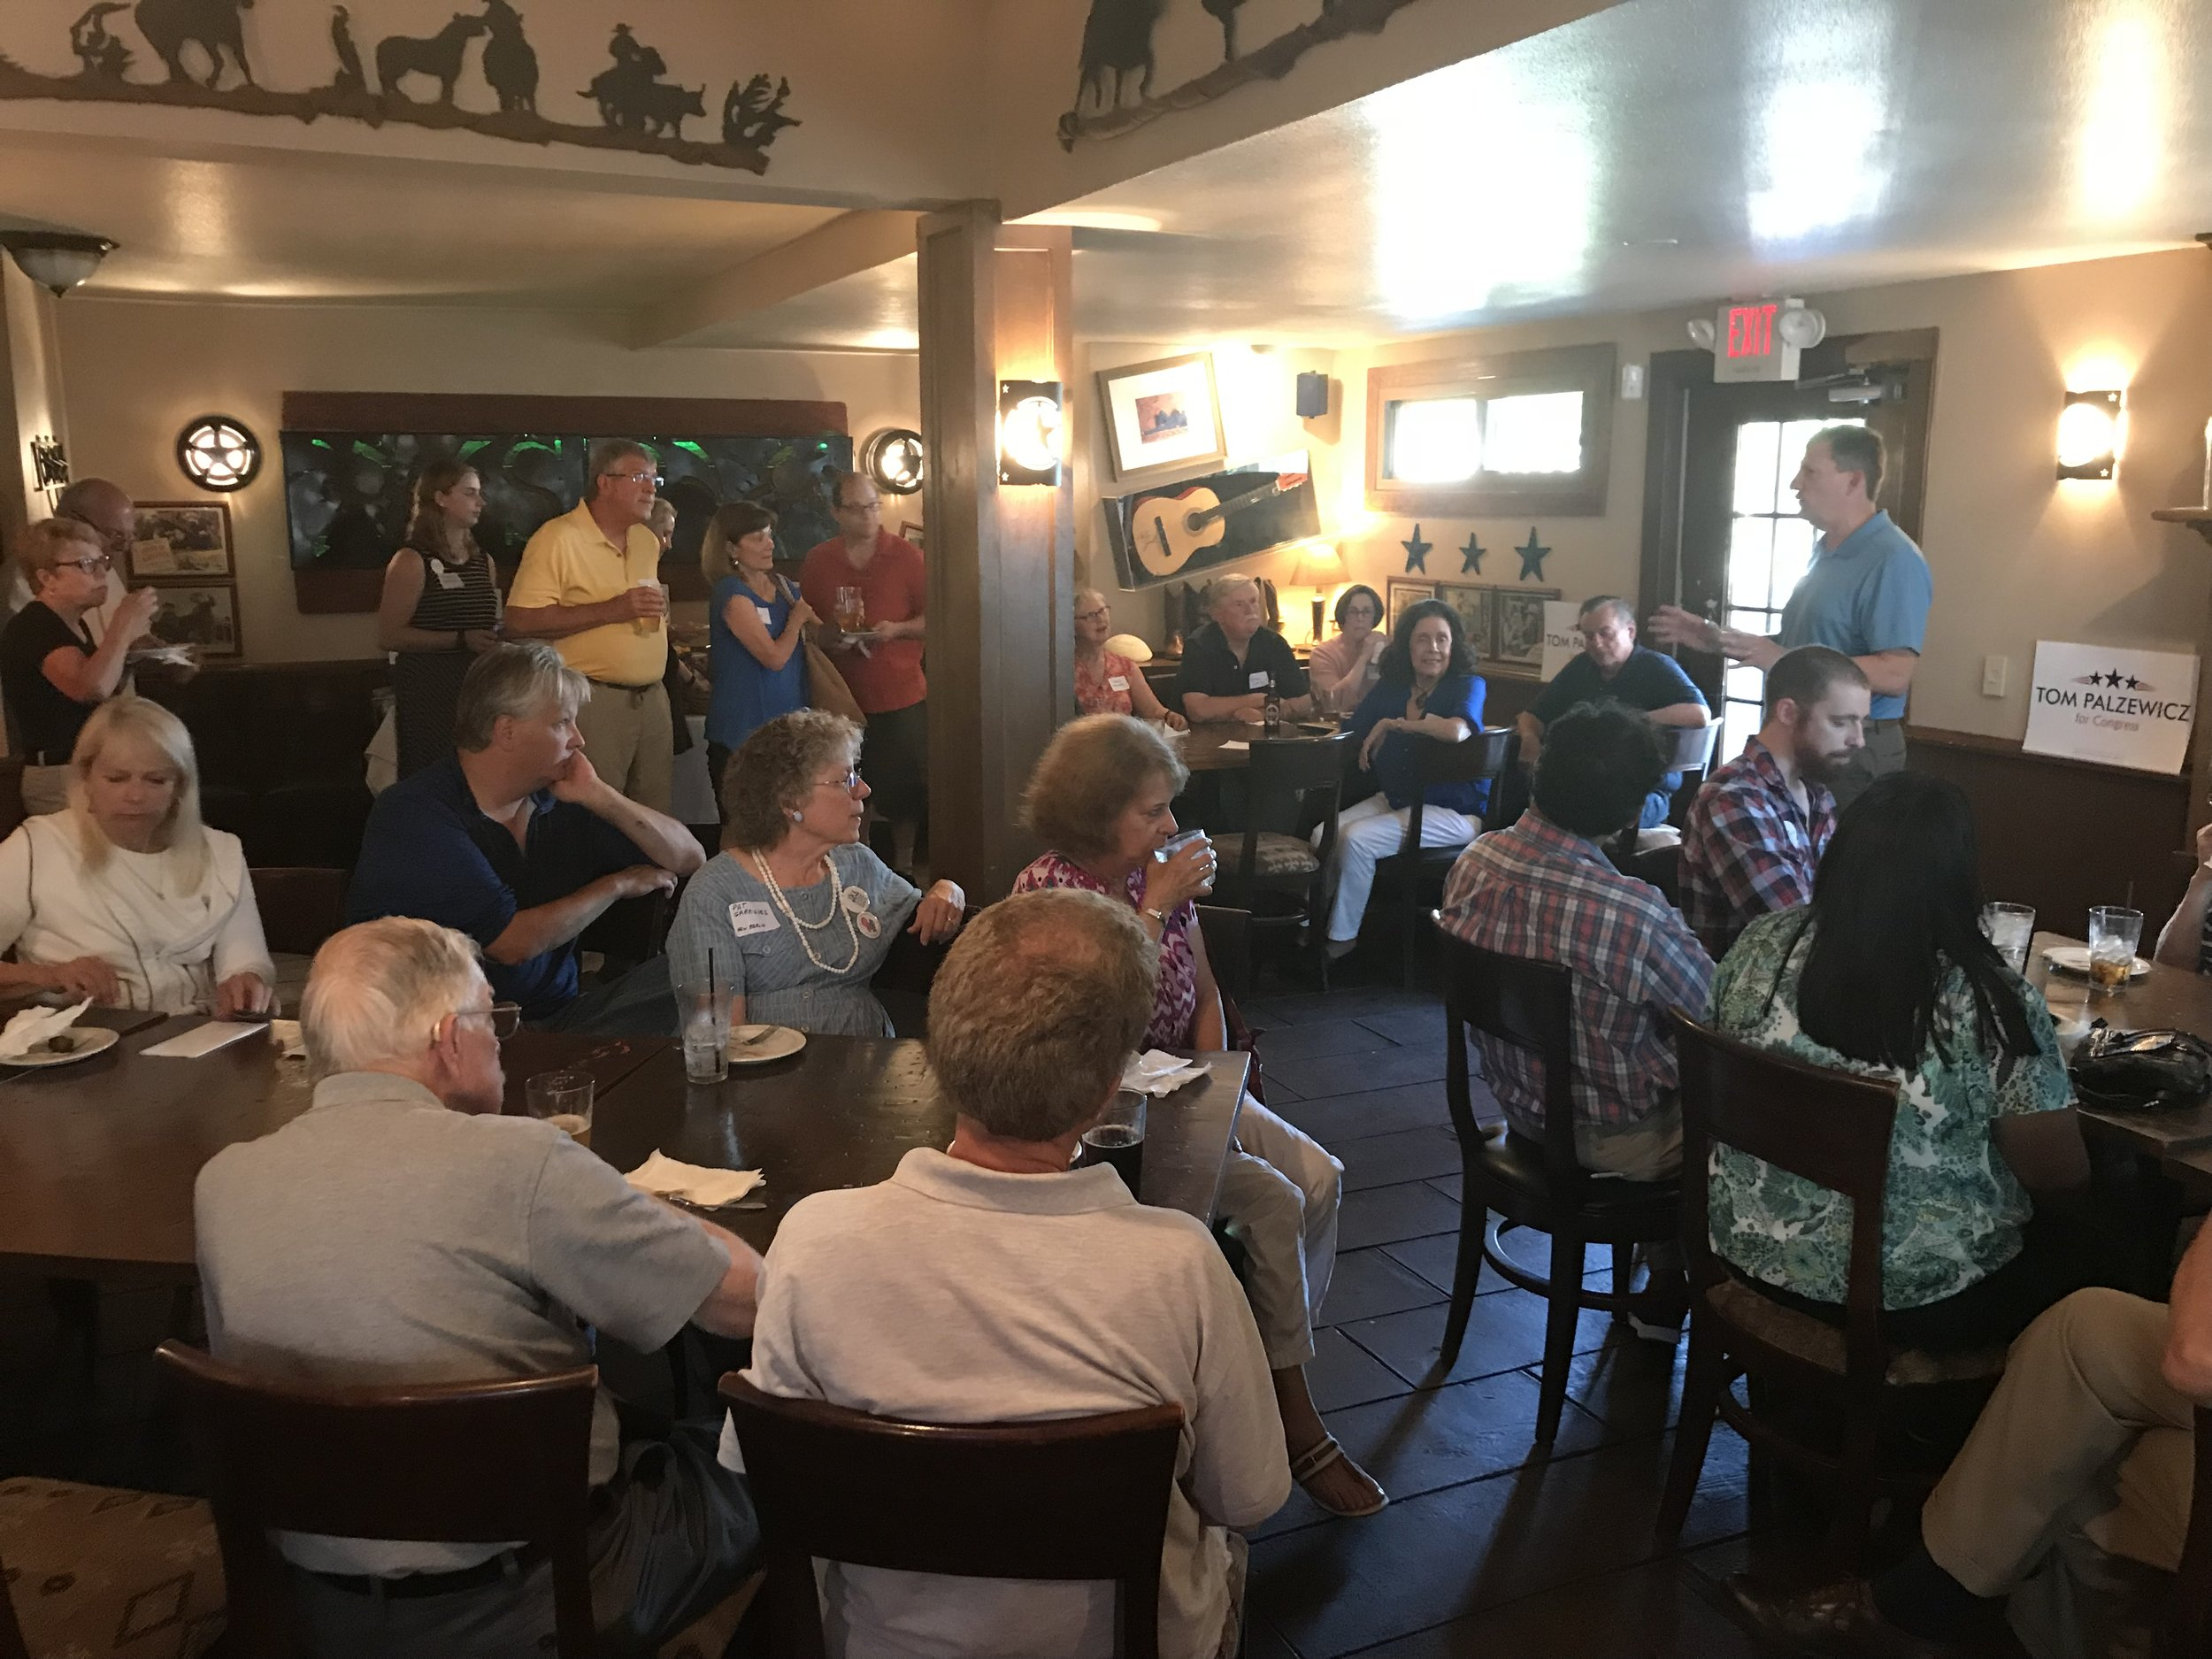 You're invited to join Congressional Candidate Tom Palzewicz (WI-5) for food and drinks at our Lake Mills Mixer.  This is your opportunity to learn more about Tom's campaign and enjoy an evening with friends who understand it's time for responsible leadership in the 5th.   Tuesday, July 17th, 6:00 PM to 8:00 PM   Water House Bistro : 132 E Lake St, Lake Mills, WI 53551   Contribution Levels:   Host: $500 | Sponsor: 250 |Activist: $100 | Friend: $50 |Voter: $25   Contributions of any size are gratefully accepted!     Click here to Contribute and RSVP